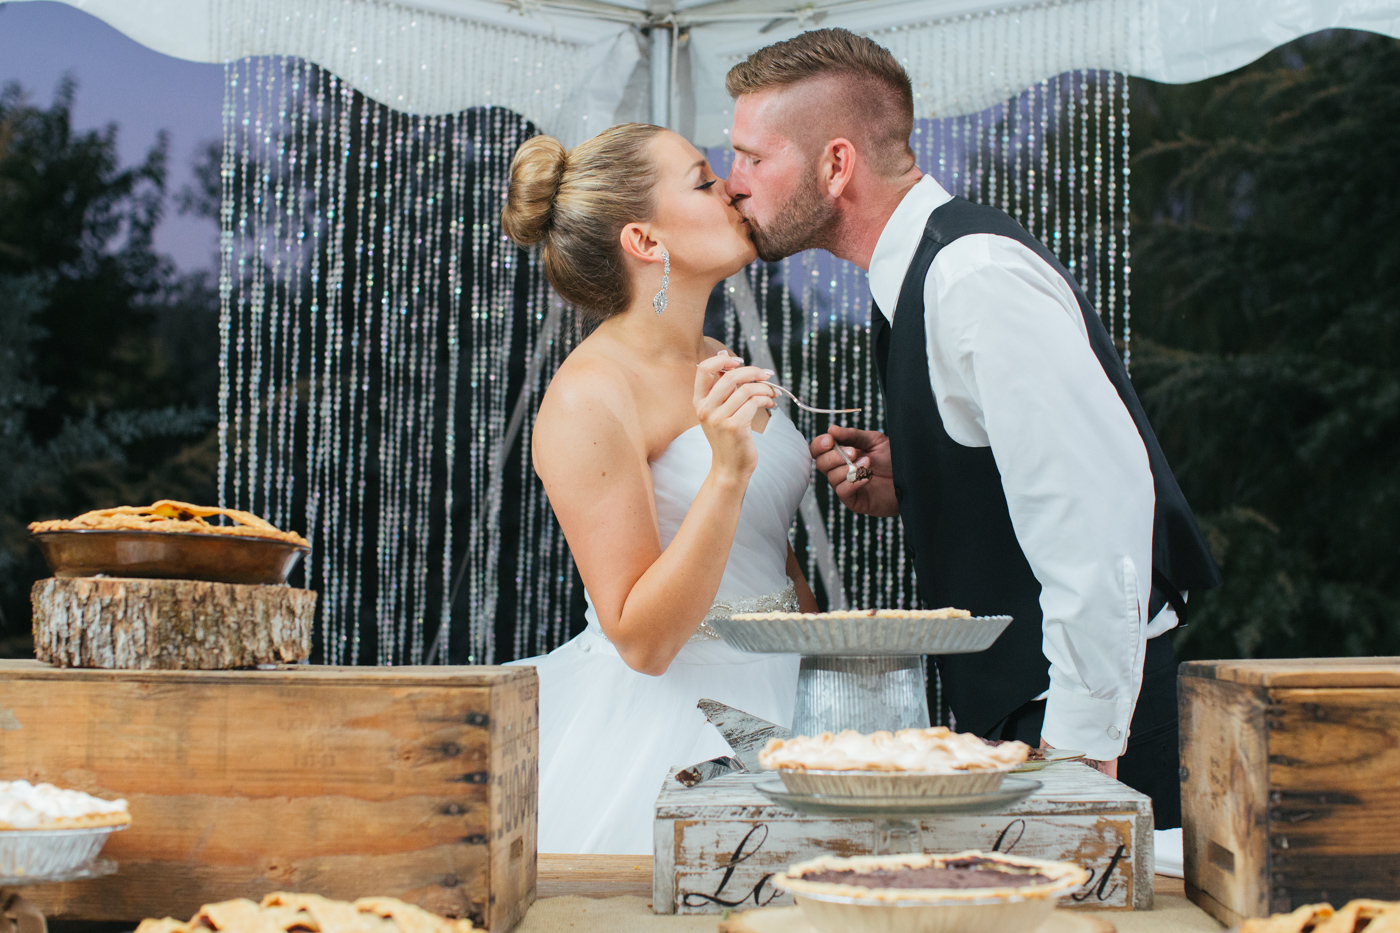 wedding-day-pies-sweets-dessert-willow-creek-events-lixxim